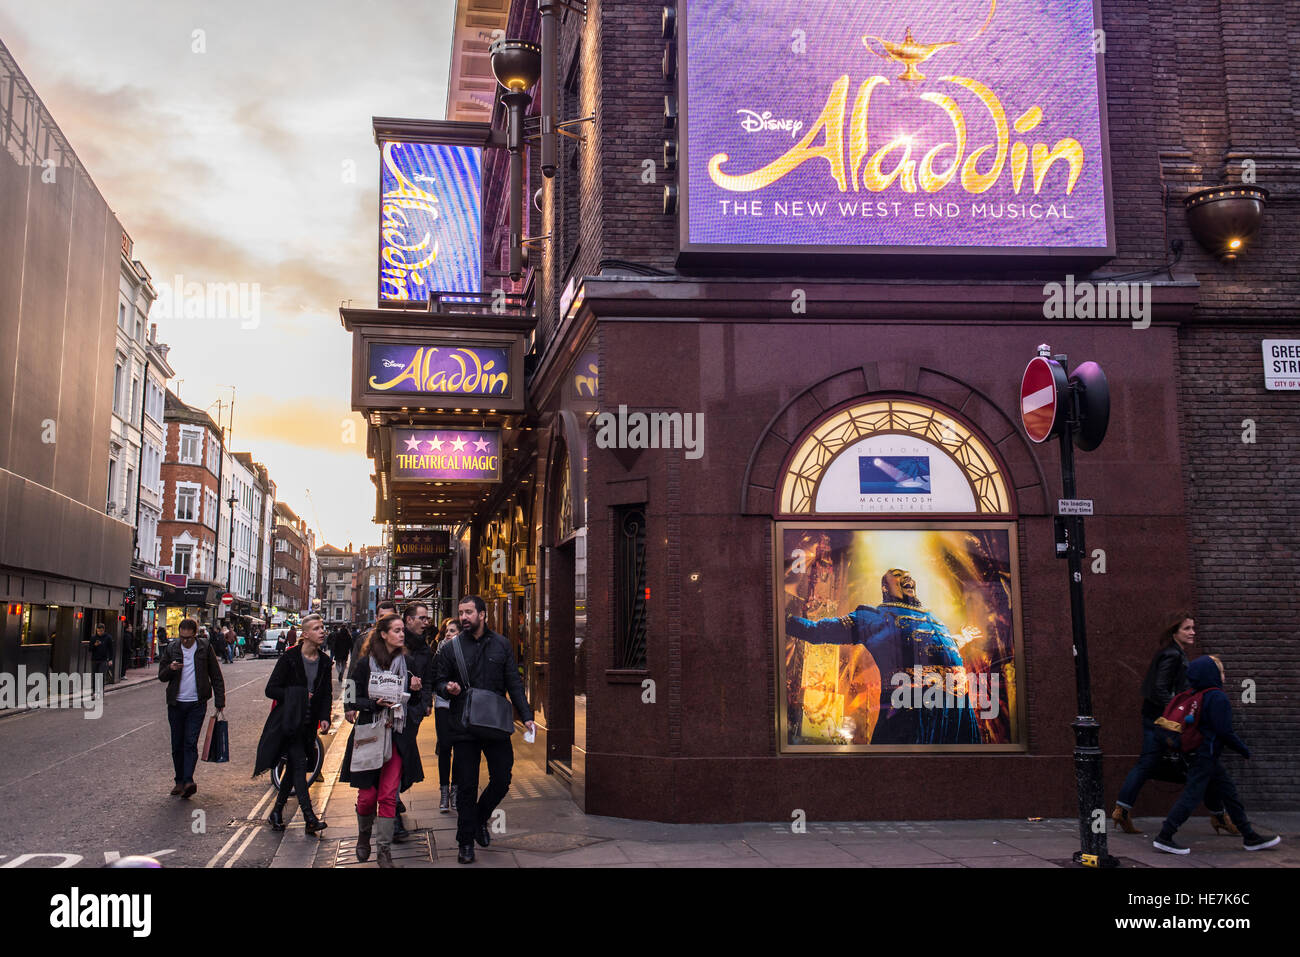 Street view of Prince Edward Theatre in Old Compton Street, Soho, London UK. Now playing Aladdin, Disney's New Musical. - Stock Image